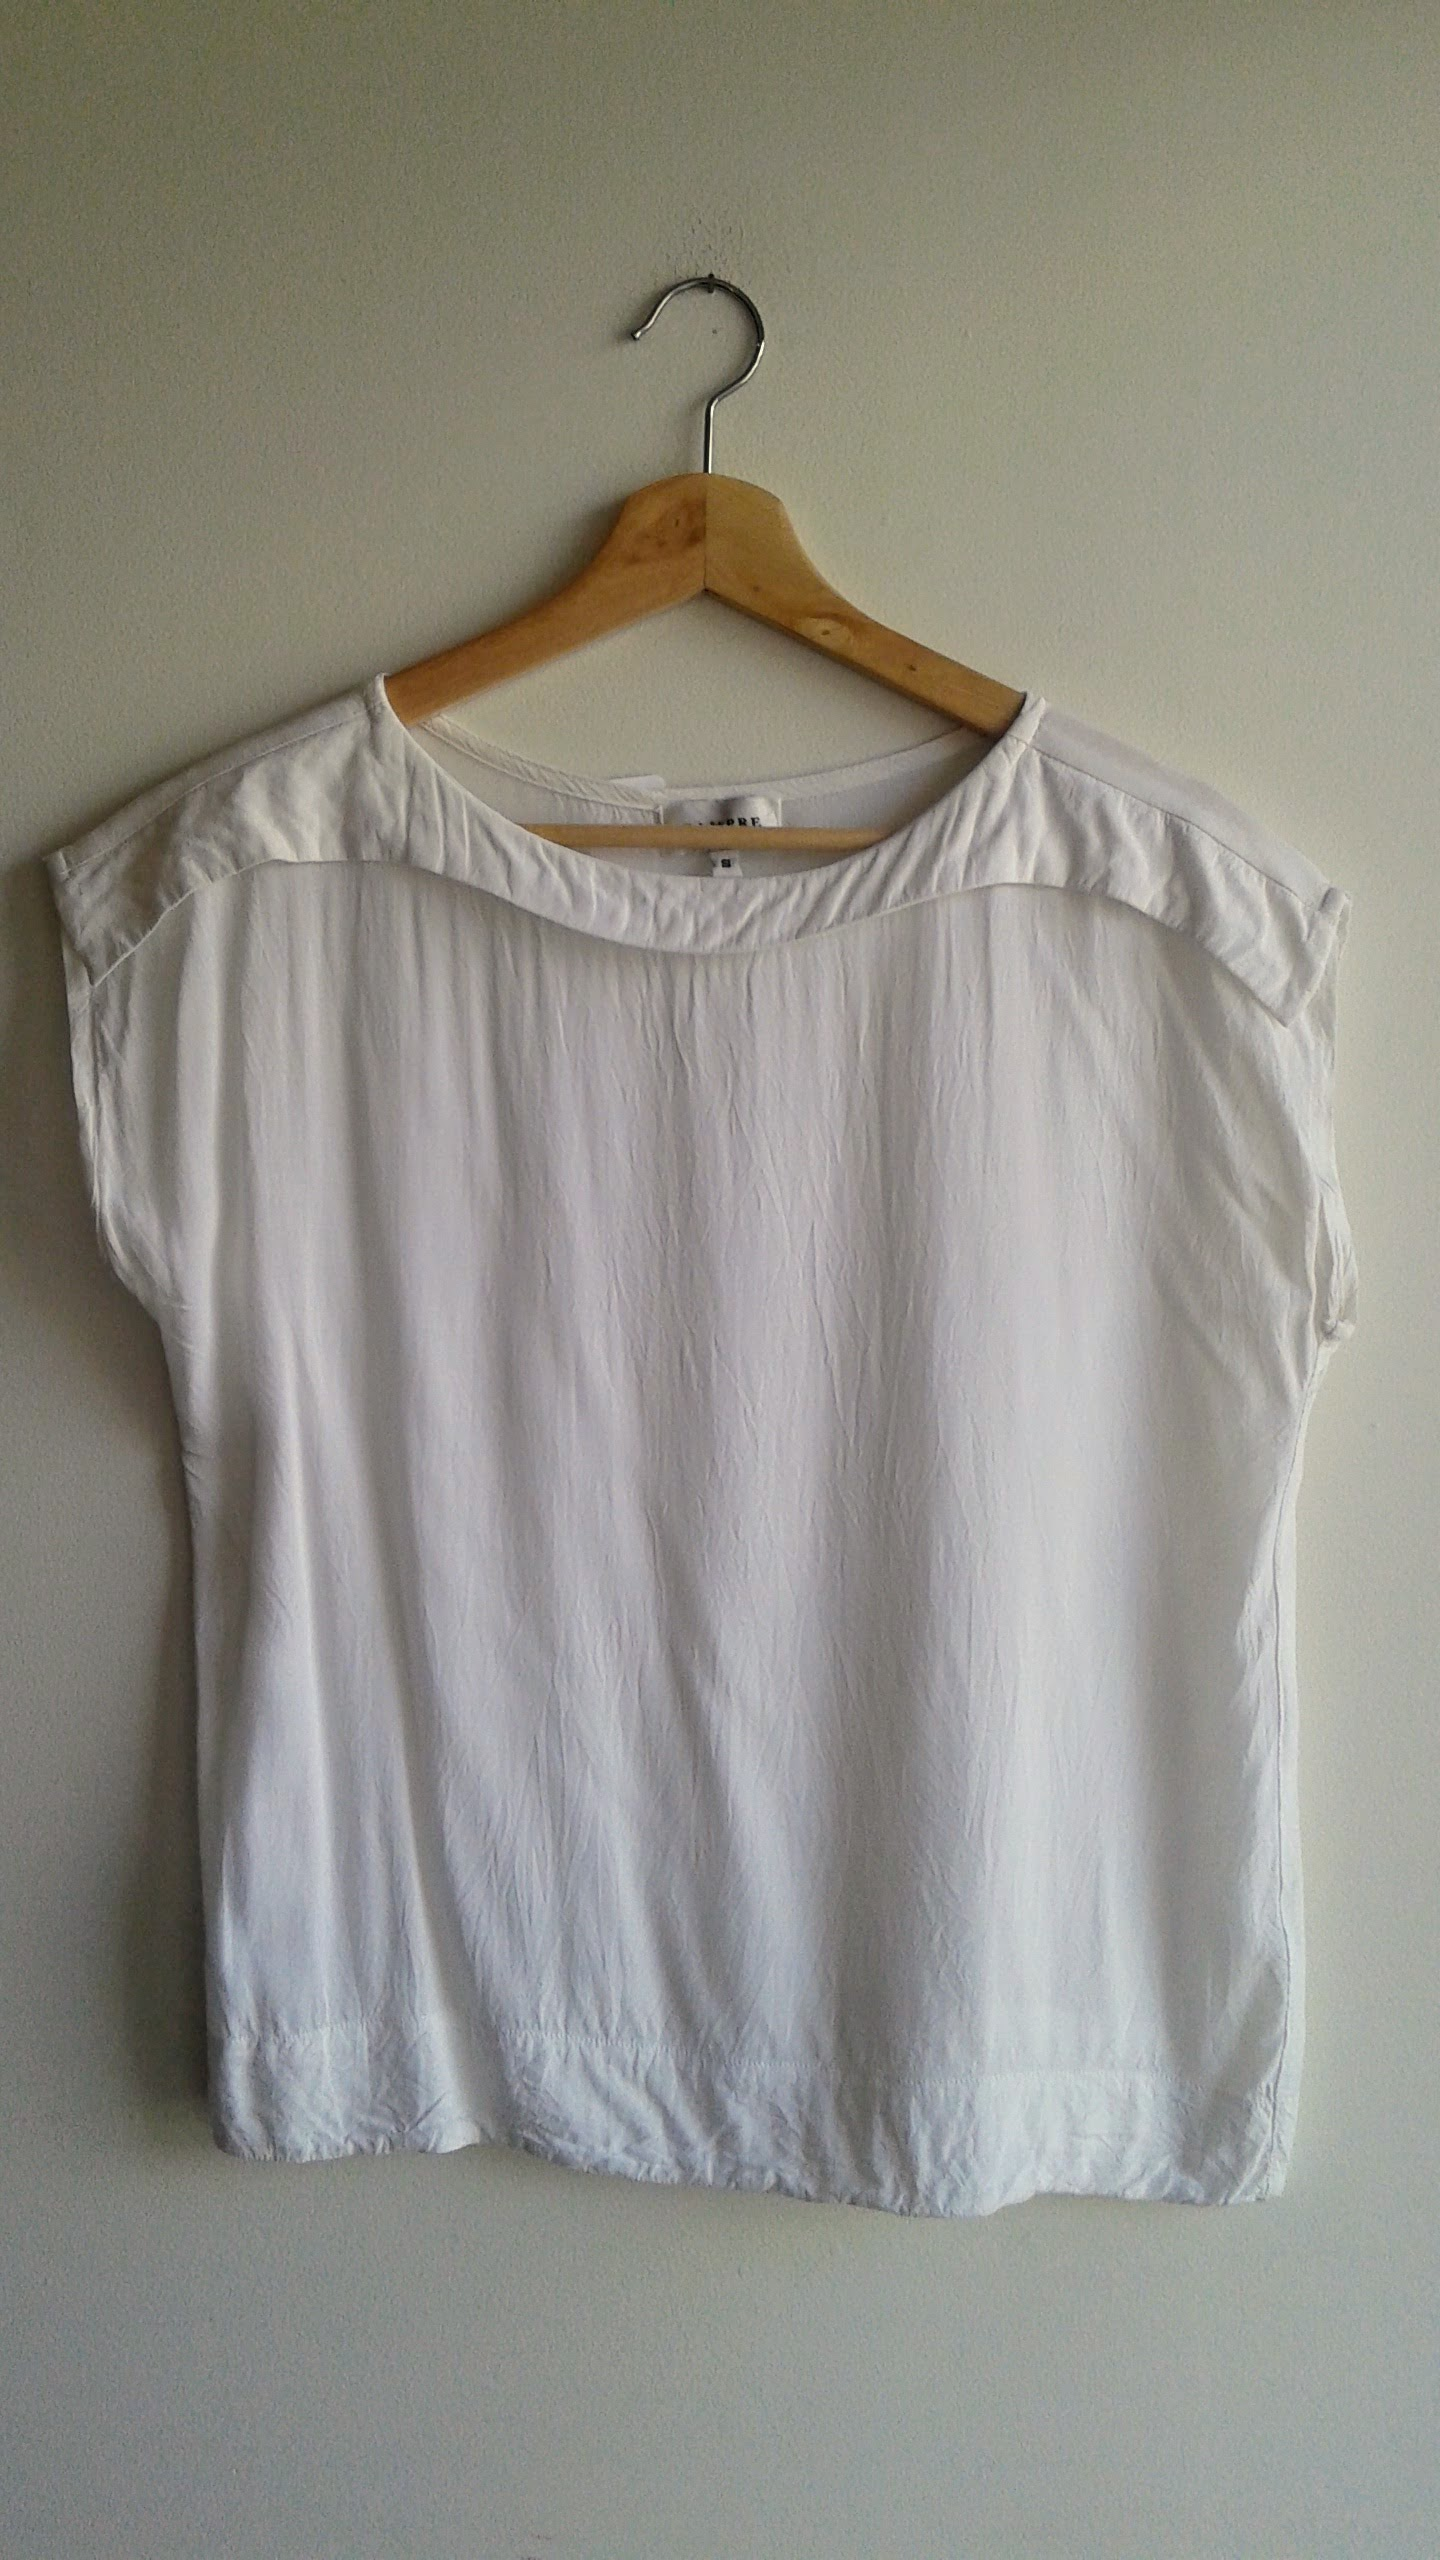 Campre top; Size S, $28